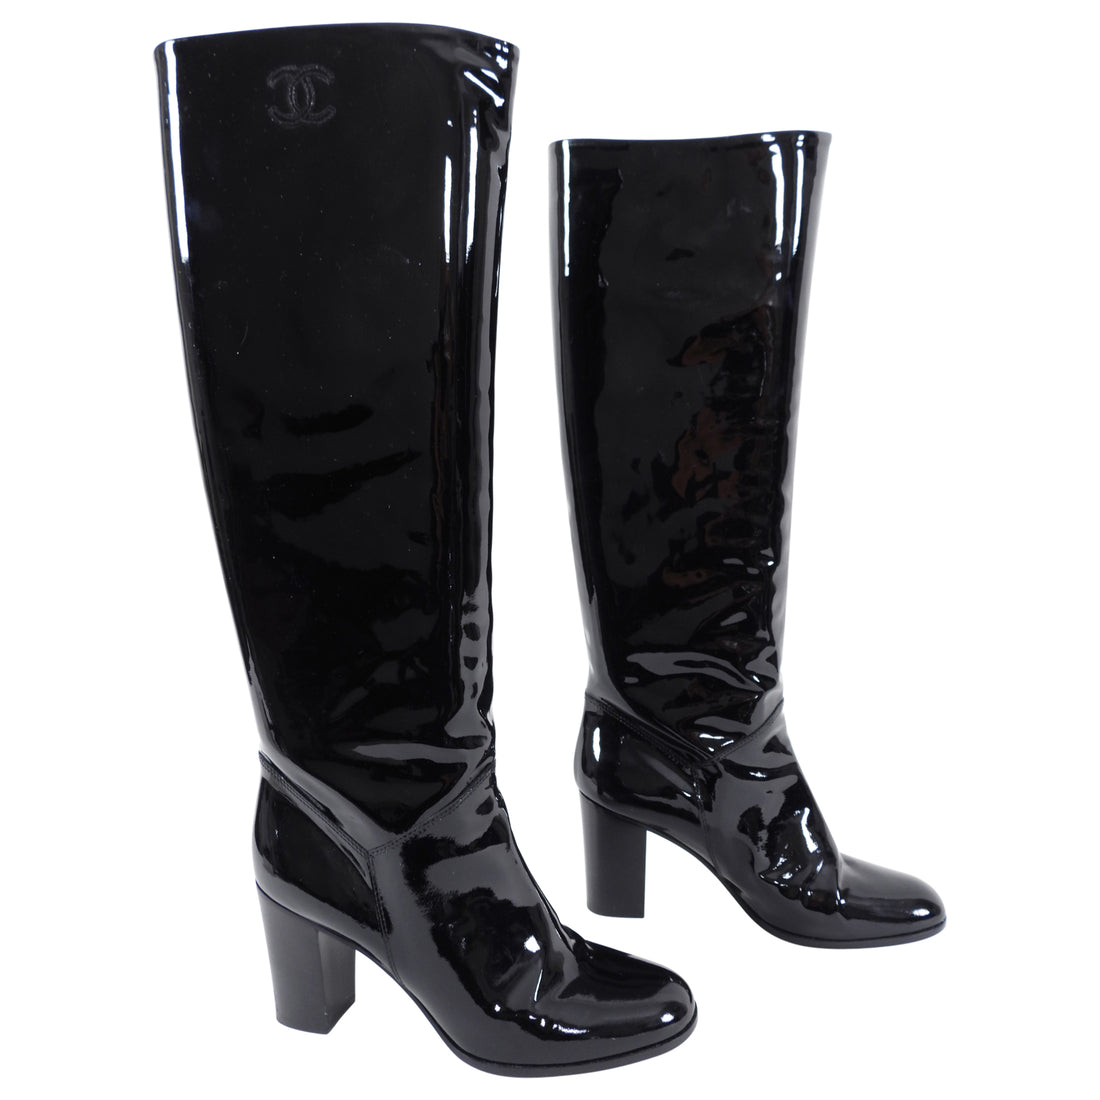 Chanel Black Patent Leather Tall Boots with Block Heel - 39.5 / 9